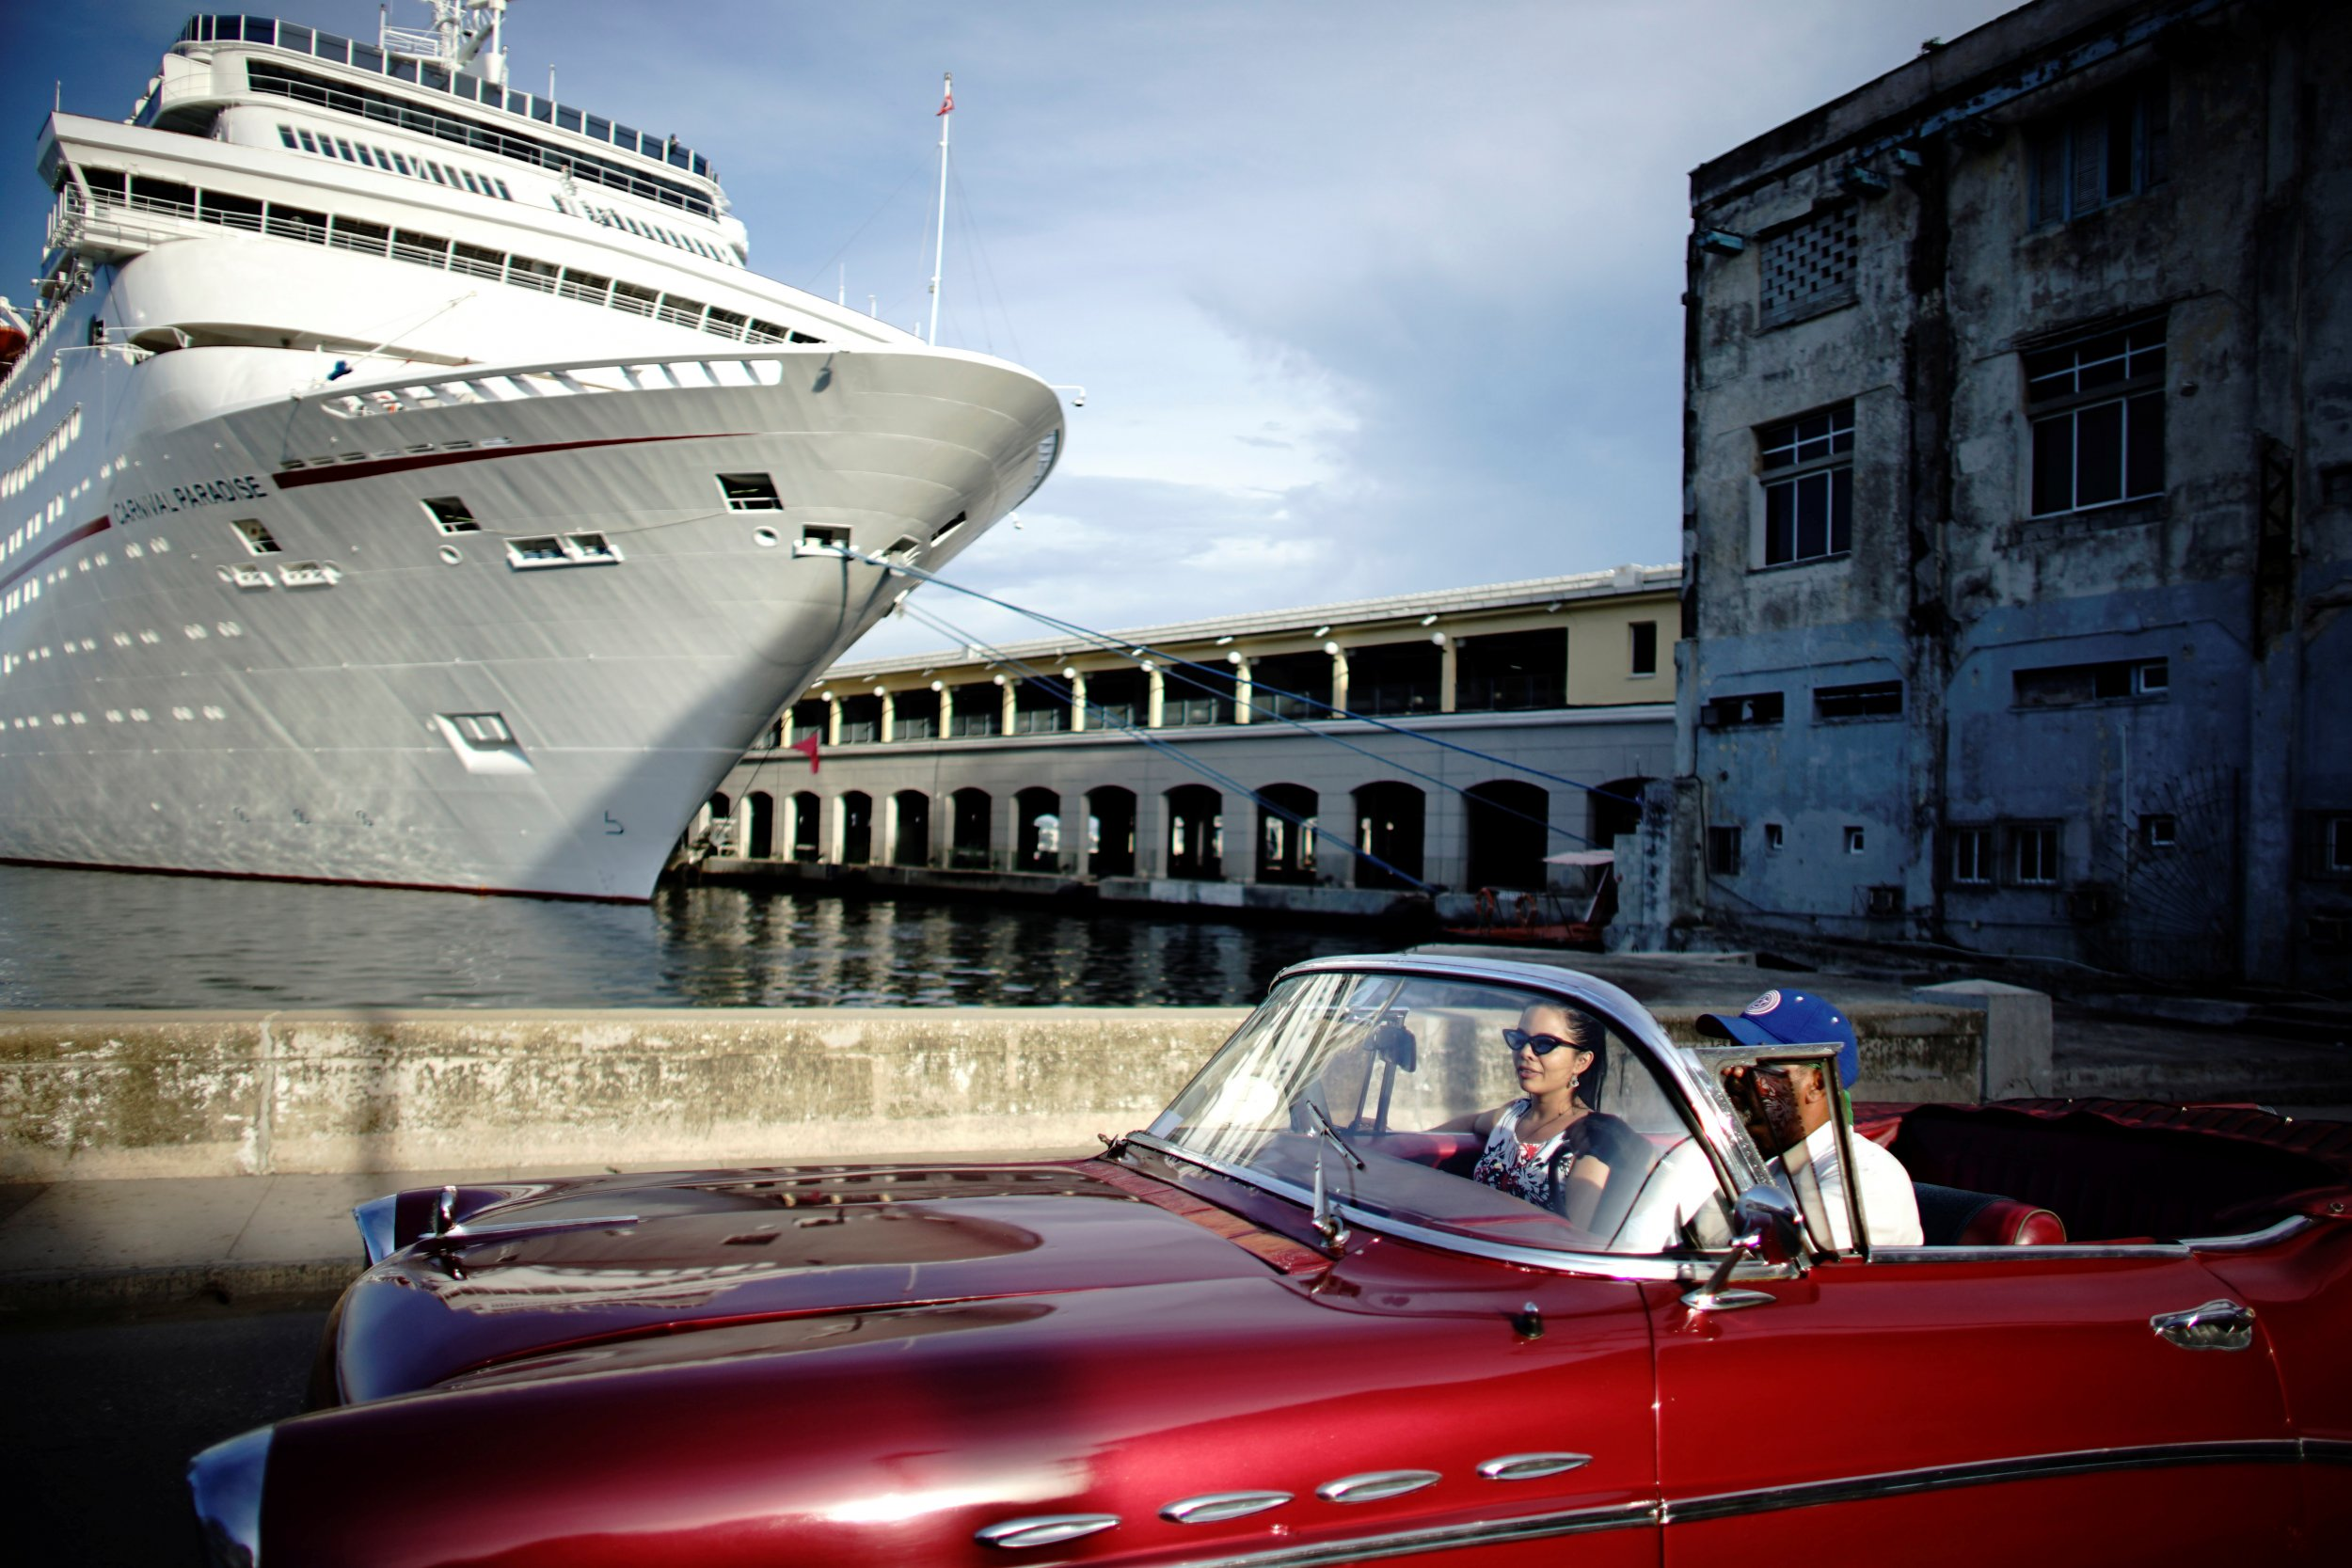 Can I Travel to Cuba? U.S. No Longer Says You Should Not Go, But There Are Still Restrictions